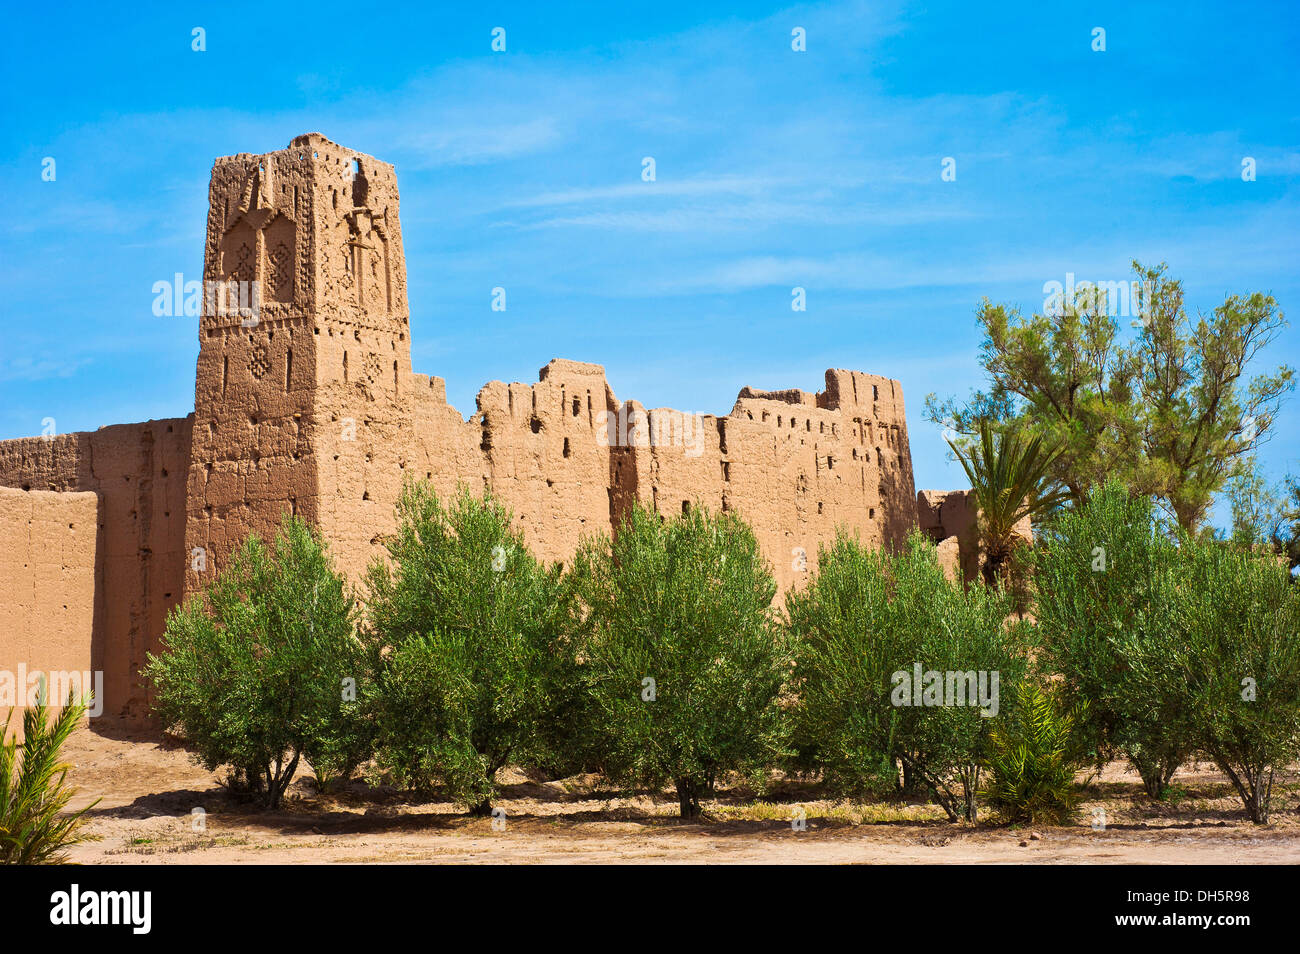 Decaying kasbah, mud brick fortress of the Berber people, Tighremt, surrounded by date palms (Phoenix), Skoura - Stock Image